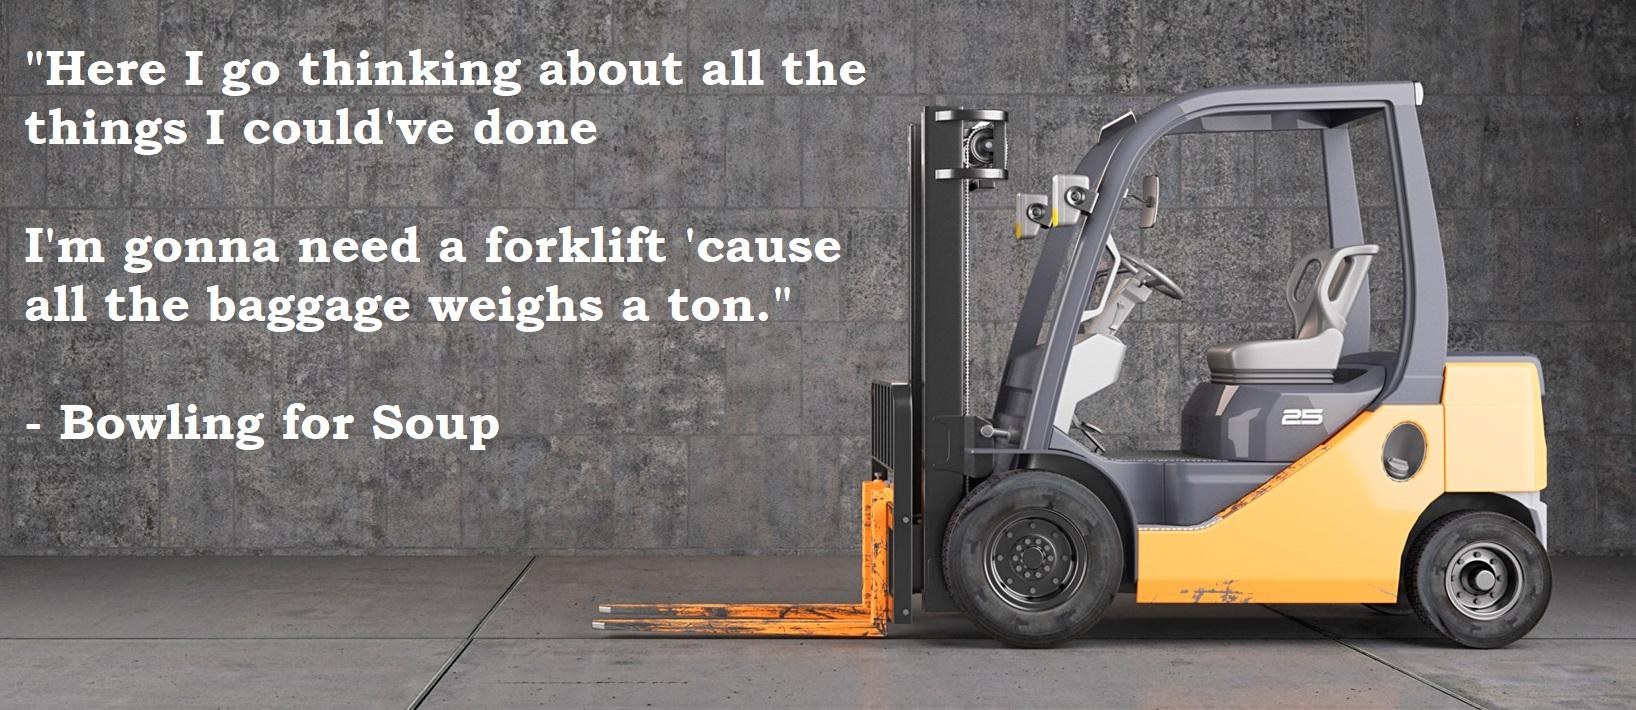 """… I'm gonna need a forklift 'cause all the baggage weighs a ton."" – Bowling for Soup [1636 x 710] [OC]"